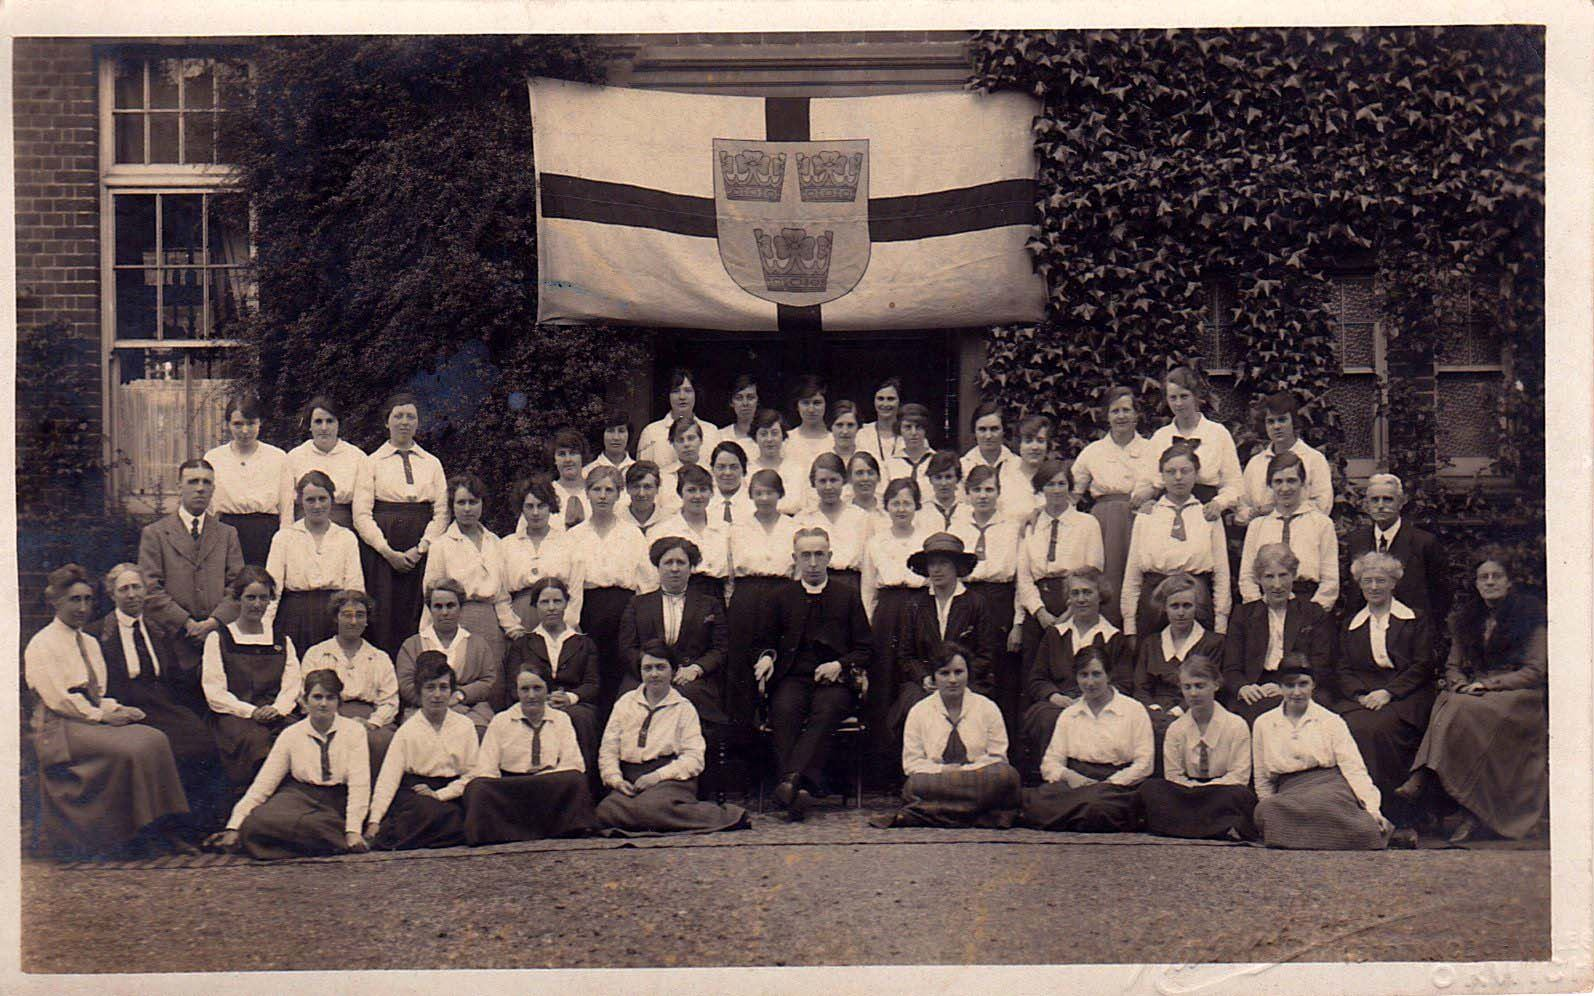 1919-1921 Norwich Training College for elementary teachers. Florence Farley middle row, 3rd girl from right (?).